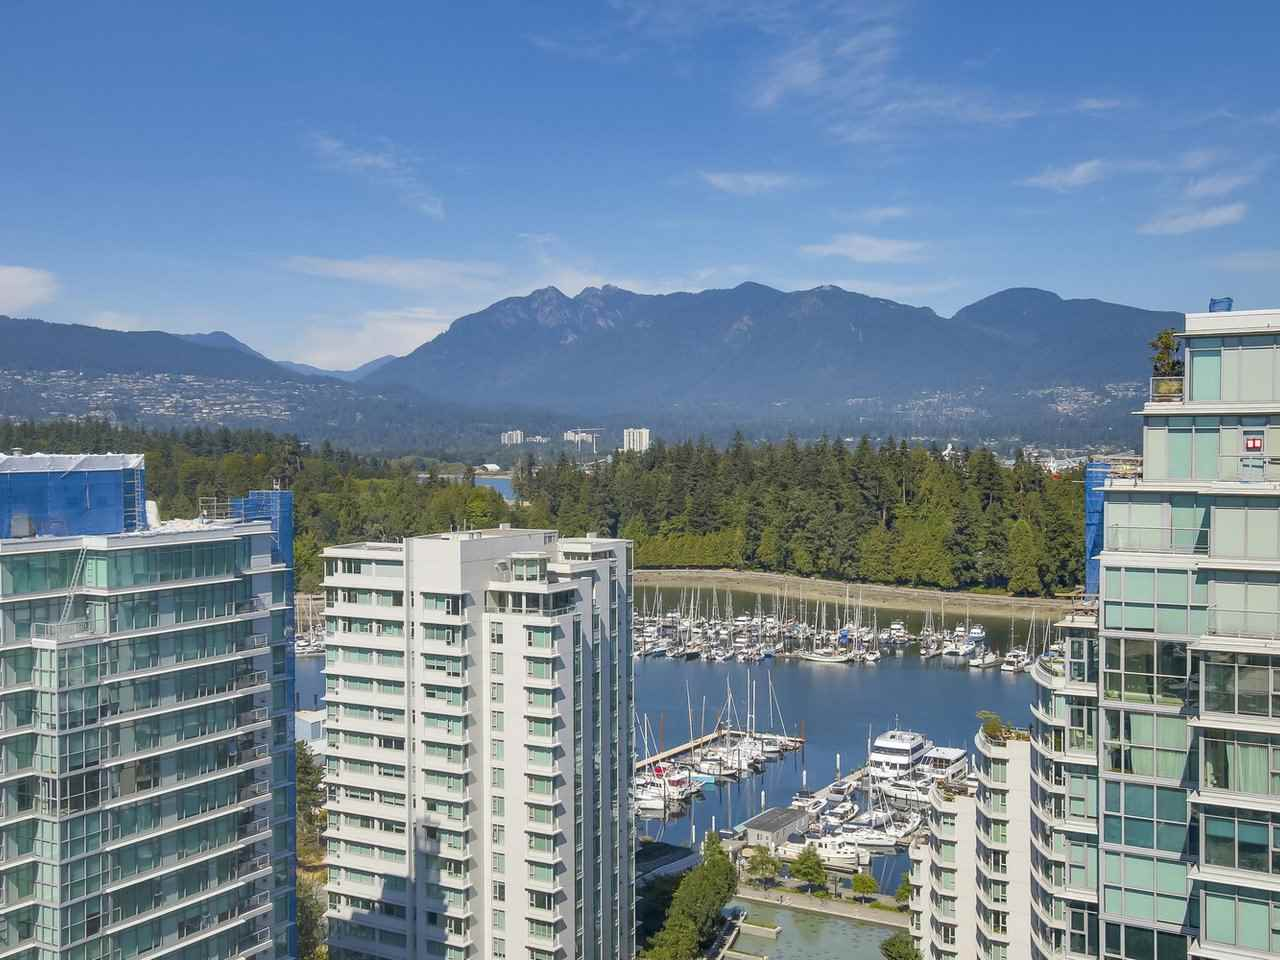 Main Photo: 2406 1723 ALBERNI STREET in : West End VW Condo for sale : MLS® # R2199313